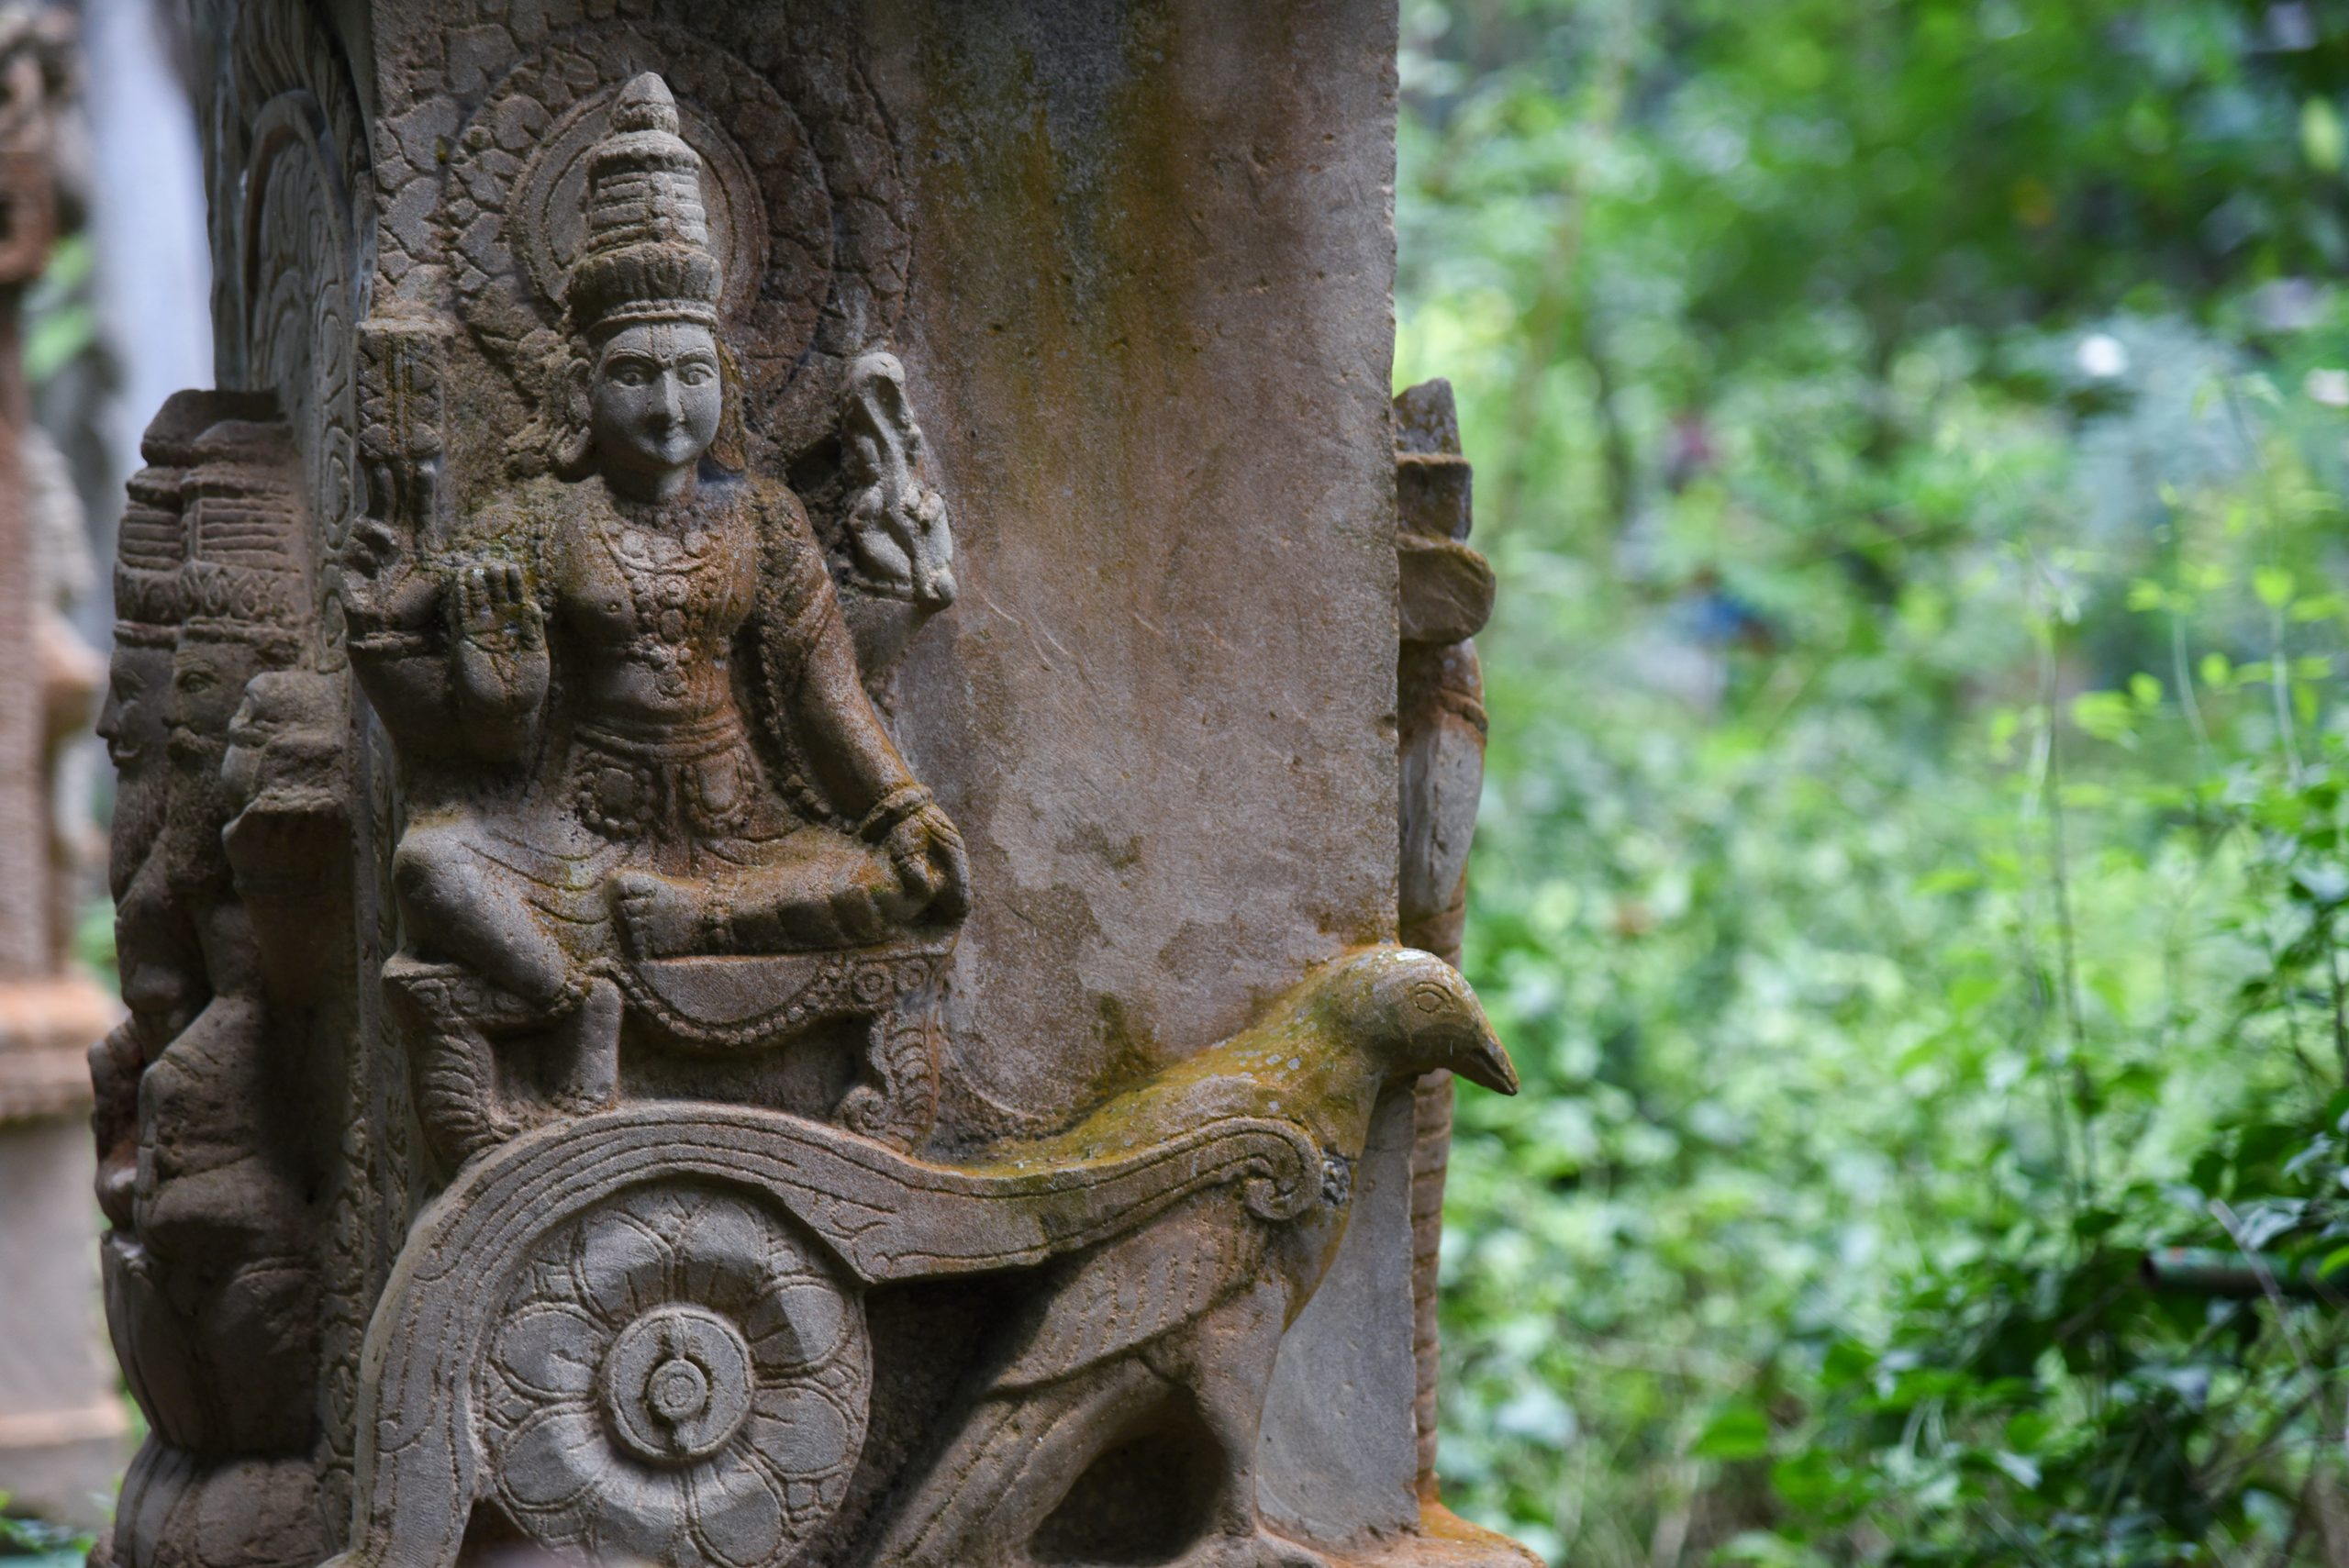 Stone carving at a temple